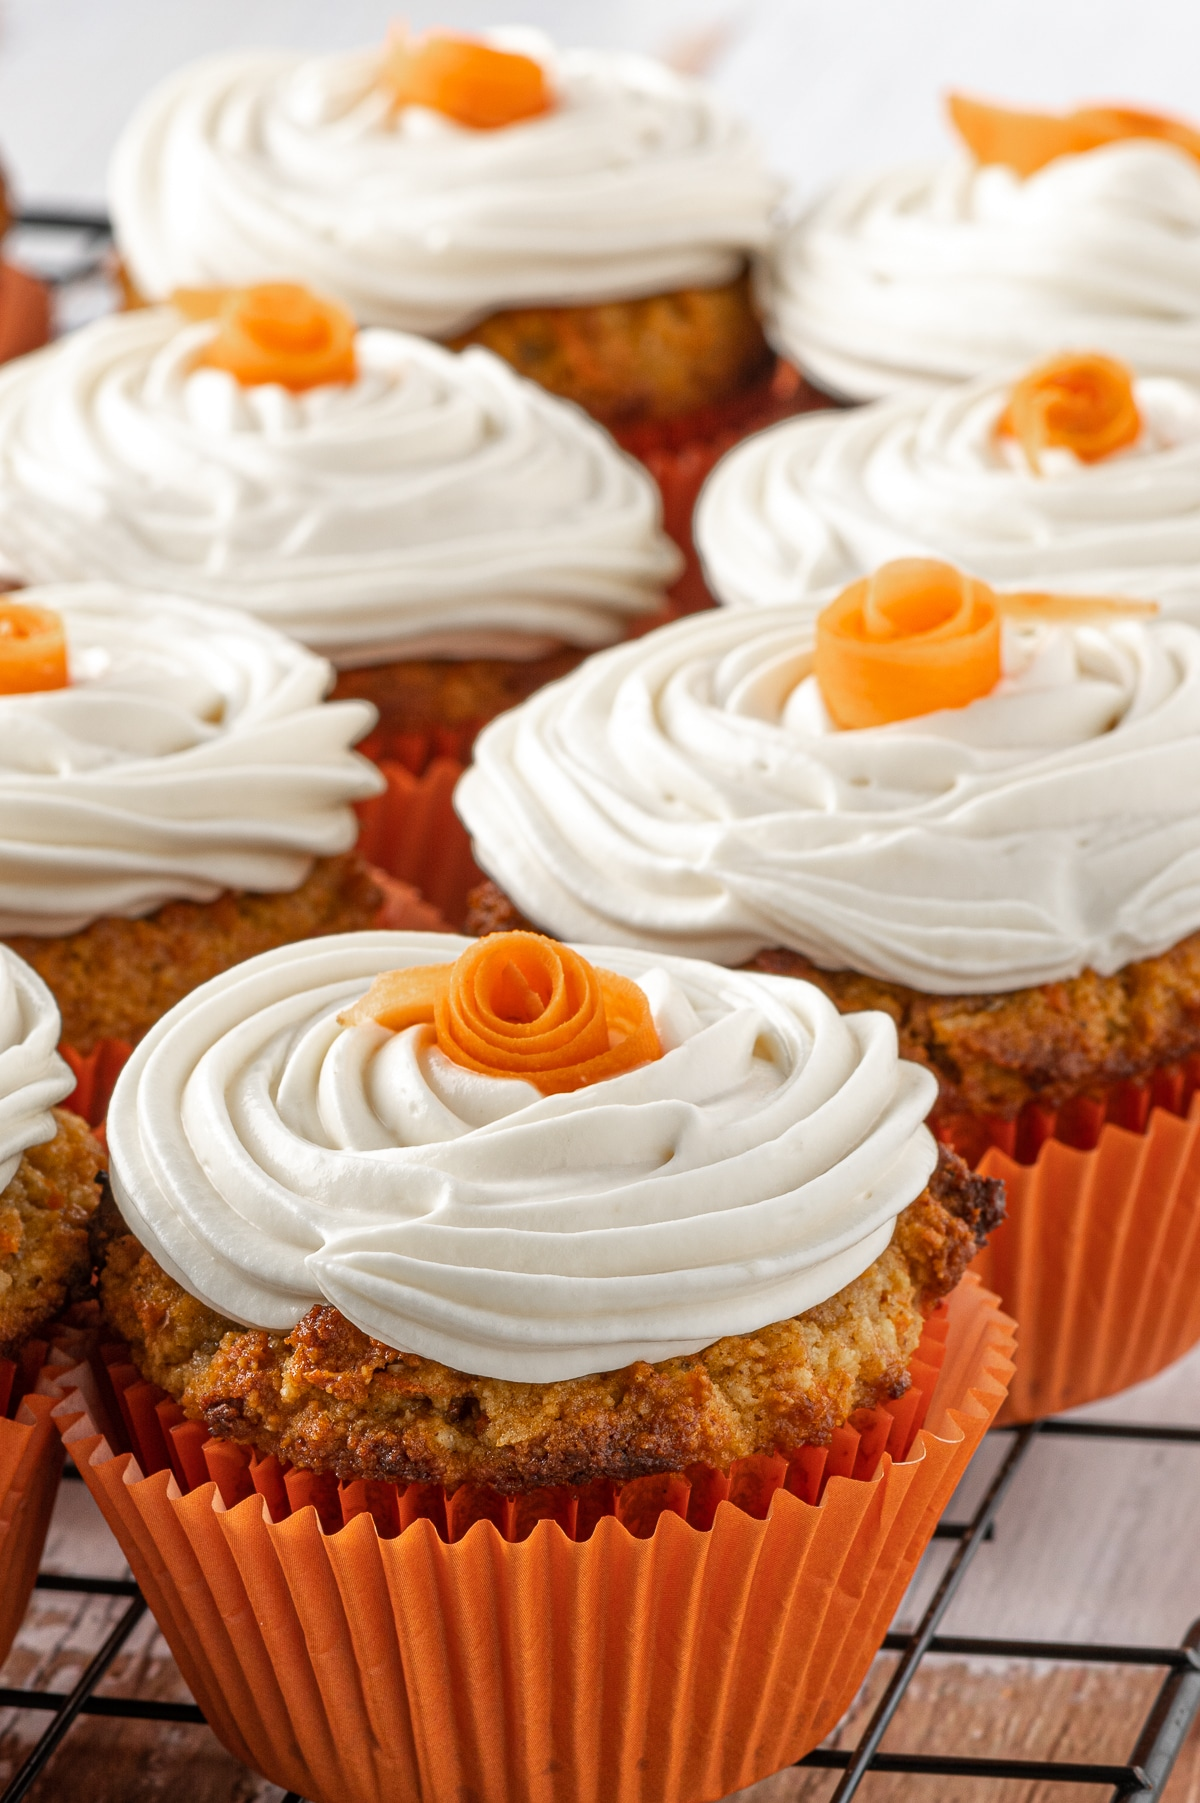 Close up of a batch of low carb carrot cake muffins with swirls of cream cheese frosting and small orange roses on the top.